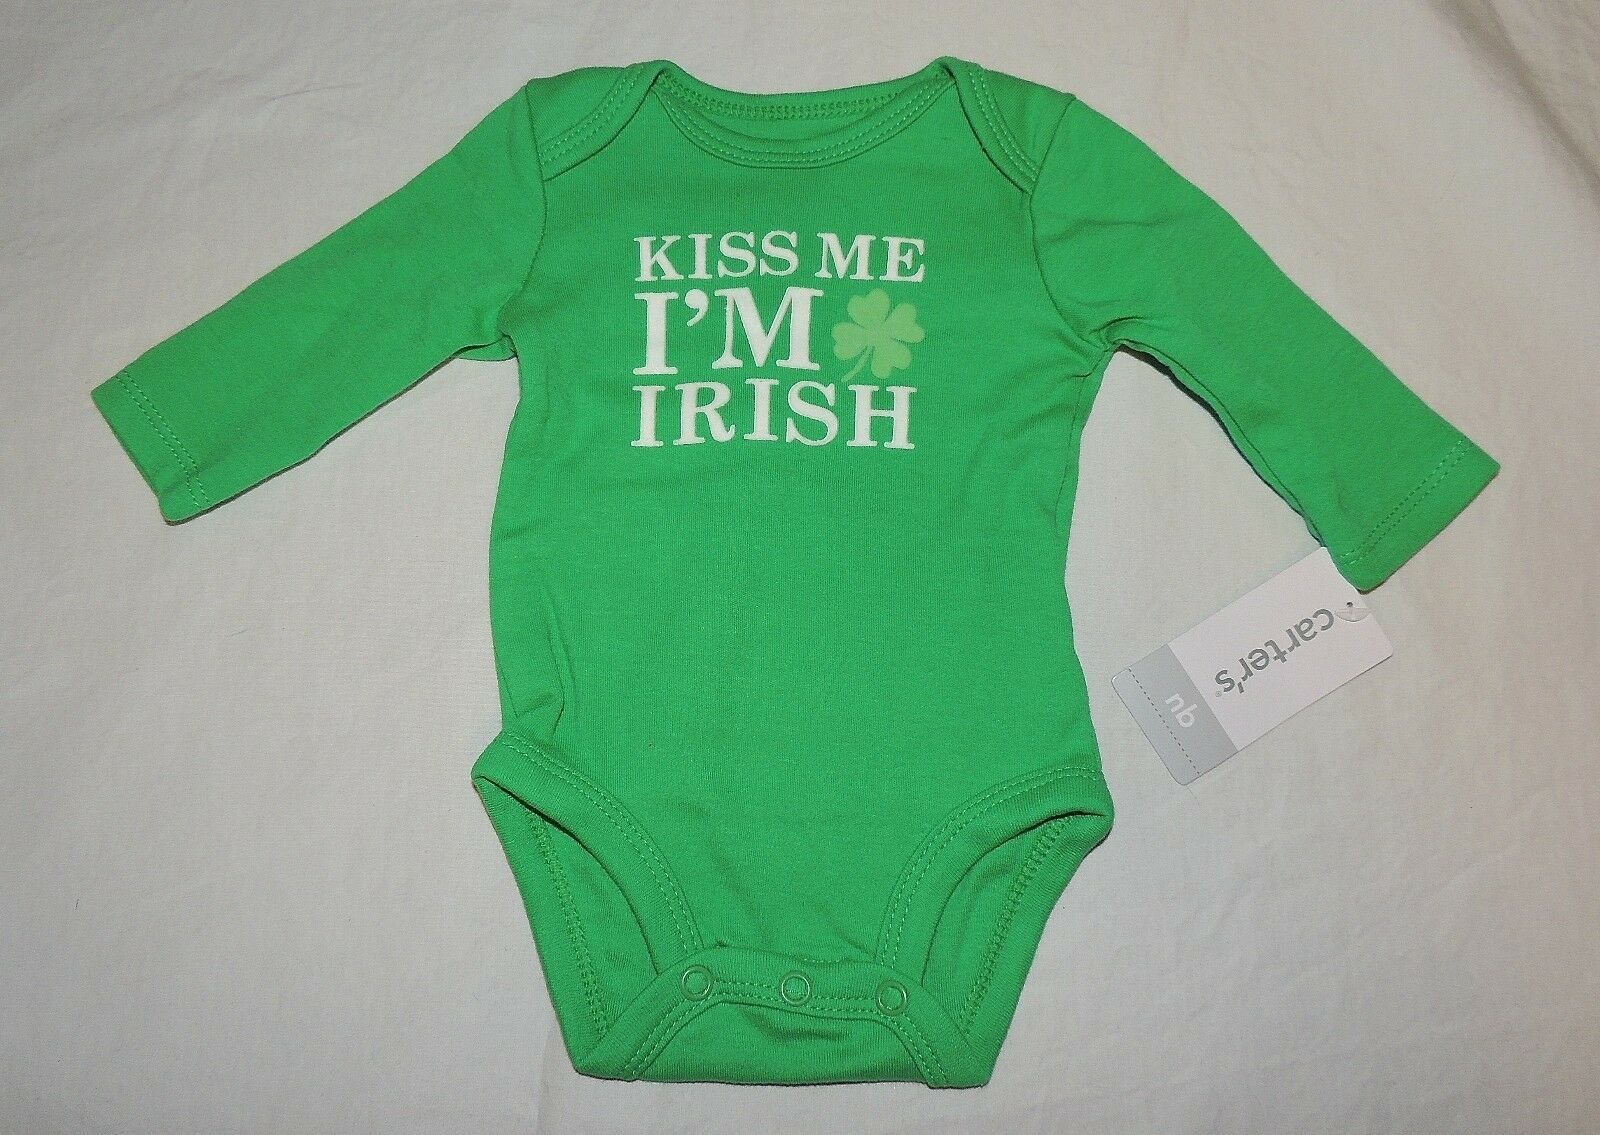 NEW  Baby Carter's Size Newborn Kiss Me I'm Irish Bodysuit St. Patrick's Day